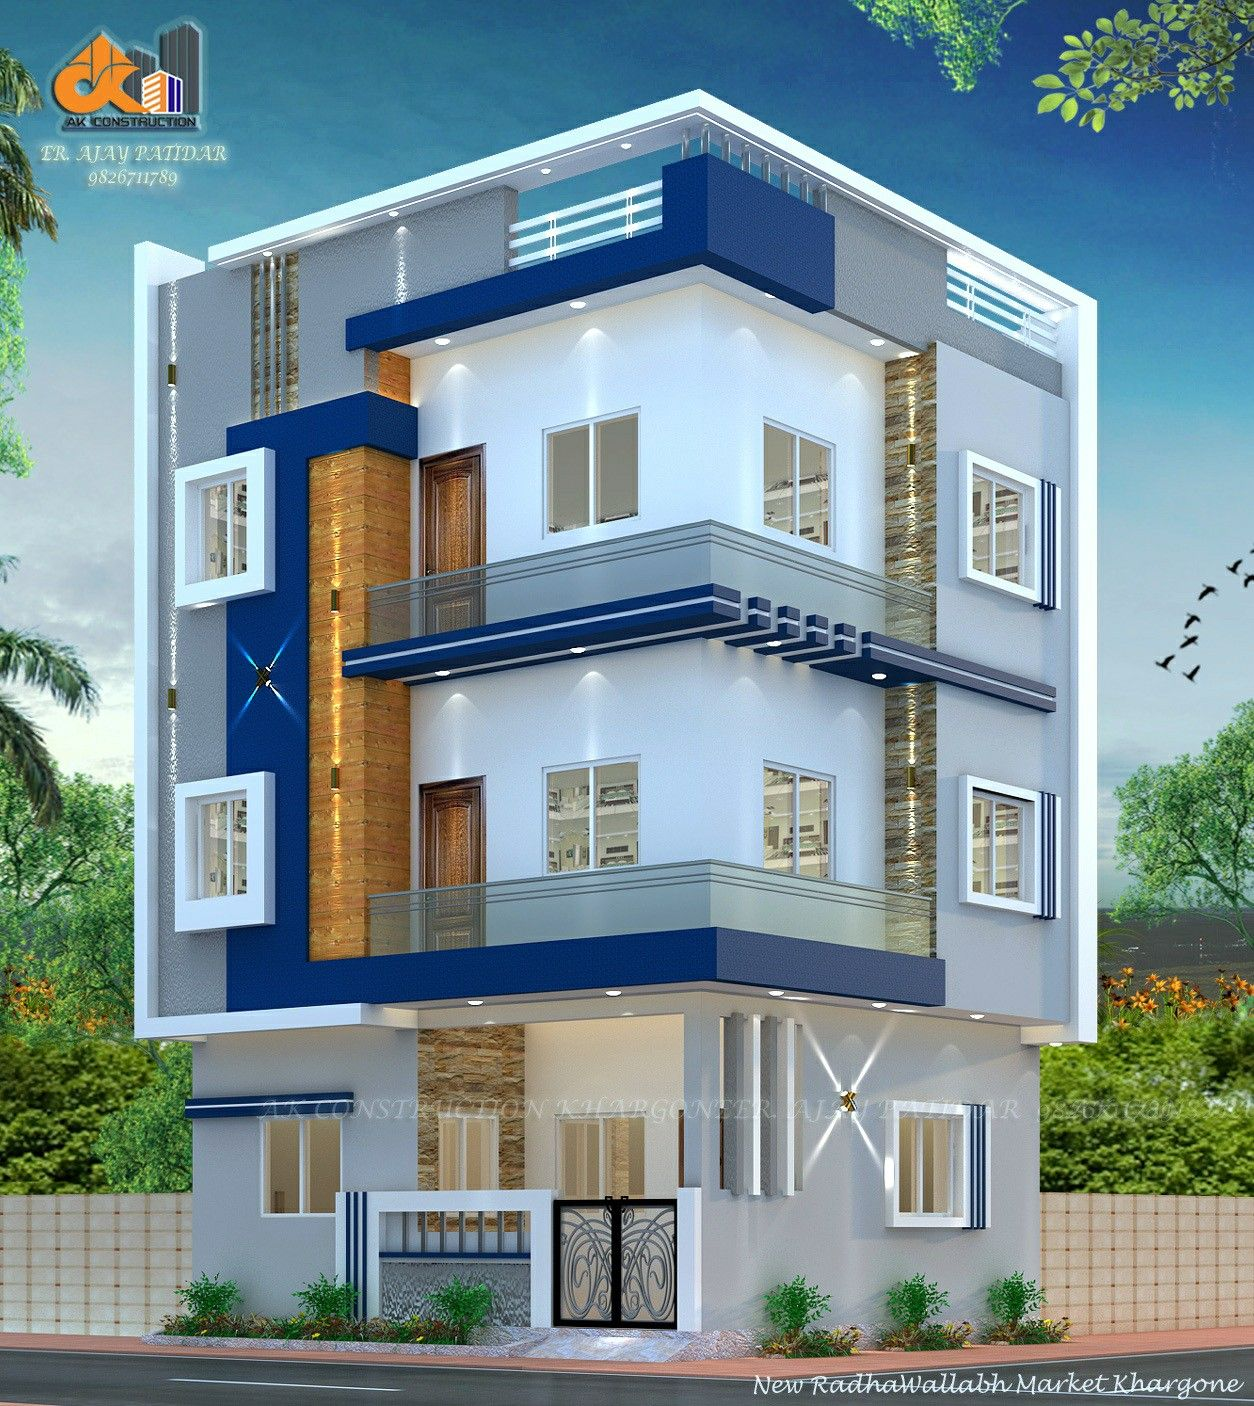 20 X 22 3 Floor Home Design In 2020 Two Story House Design House Design House Elevation